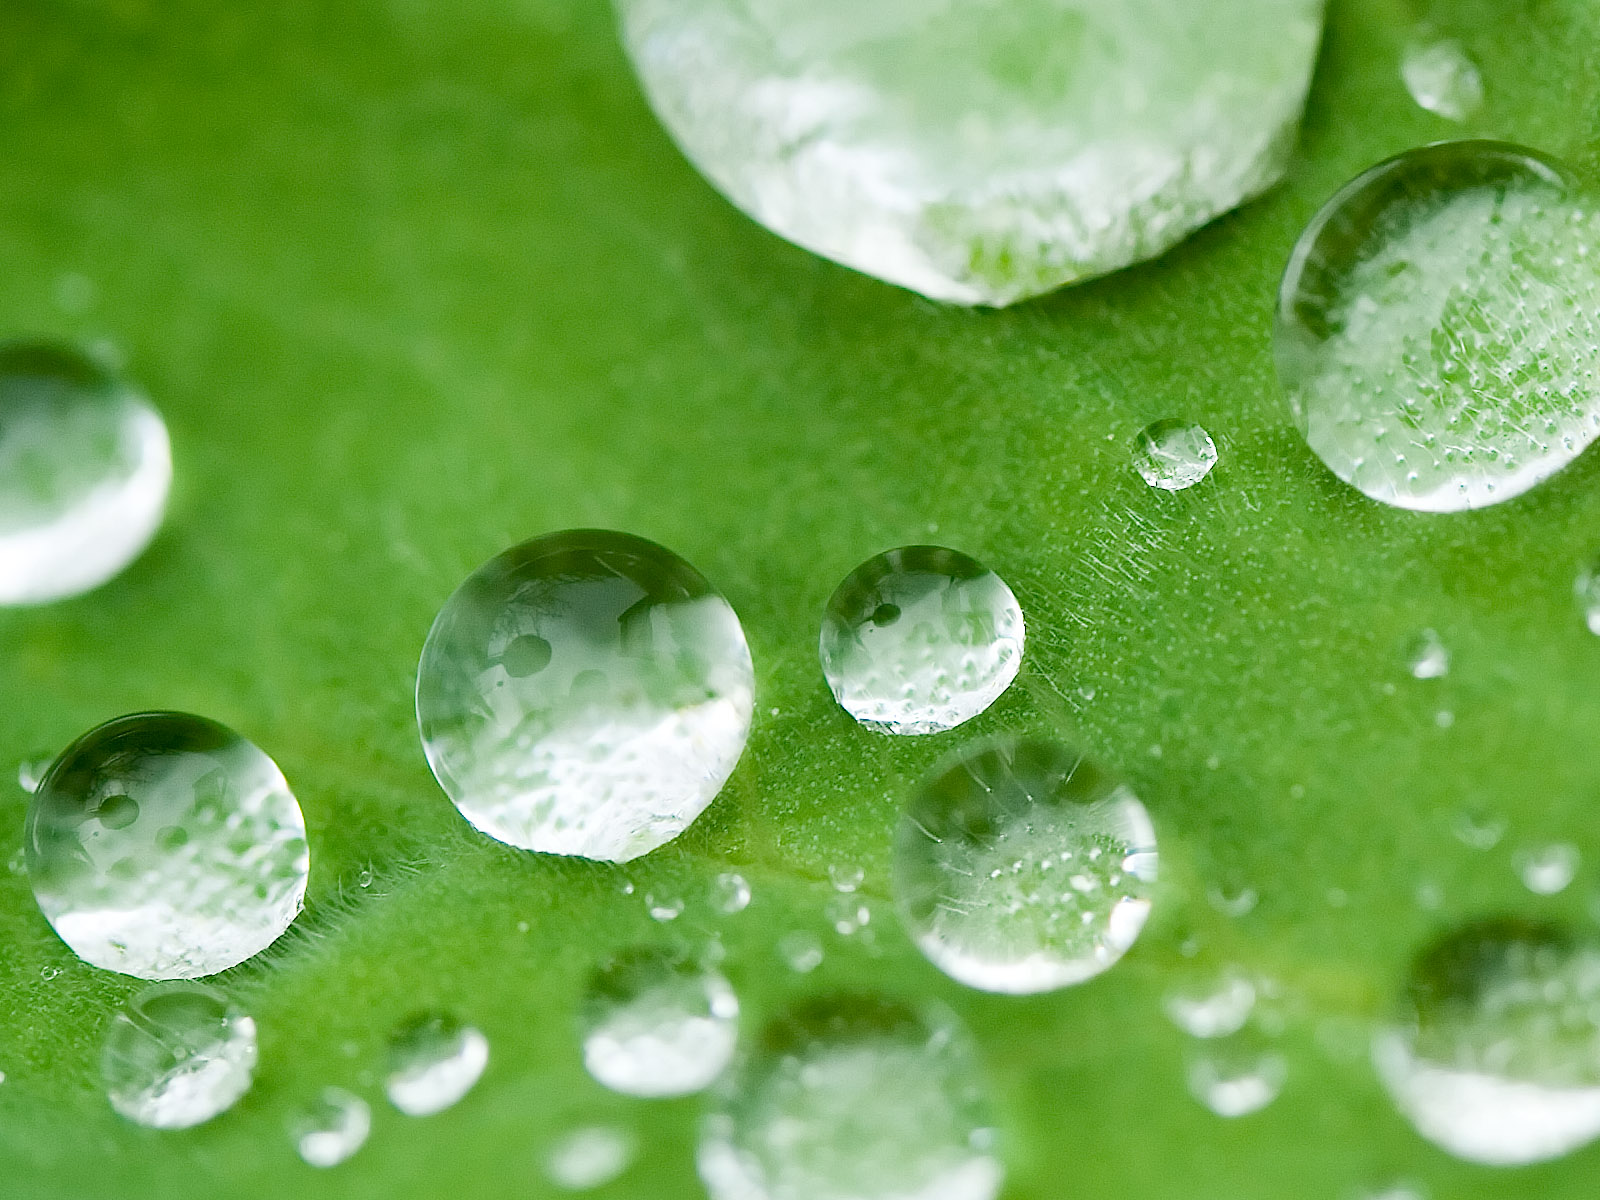 click to free download the wallpaper--Images of Nature Landscape, Small Drops on a Green Leaf, Fresh and Clean Scene